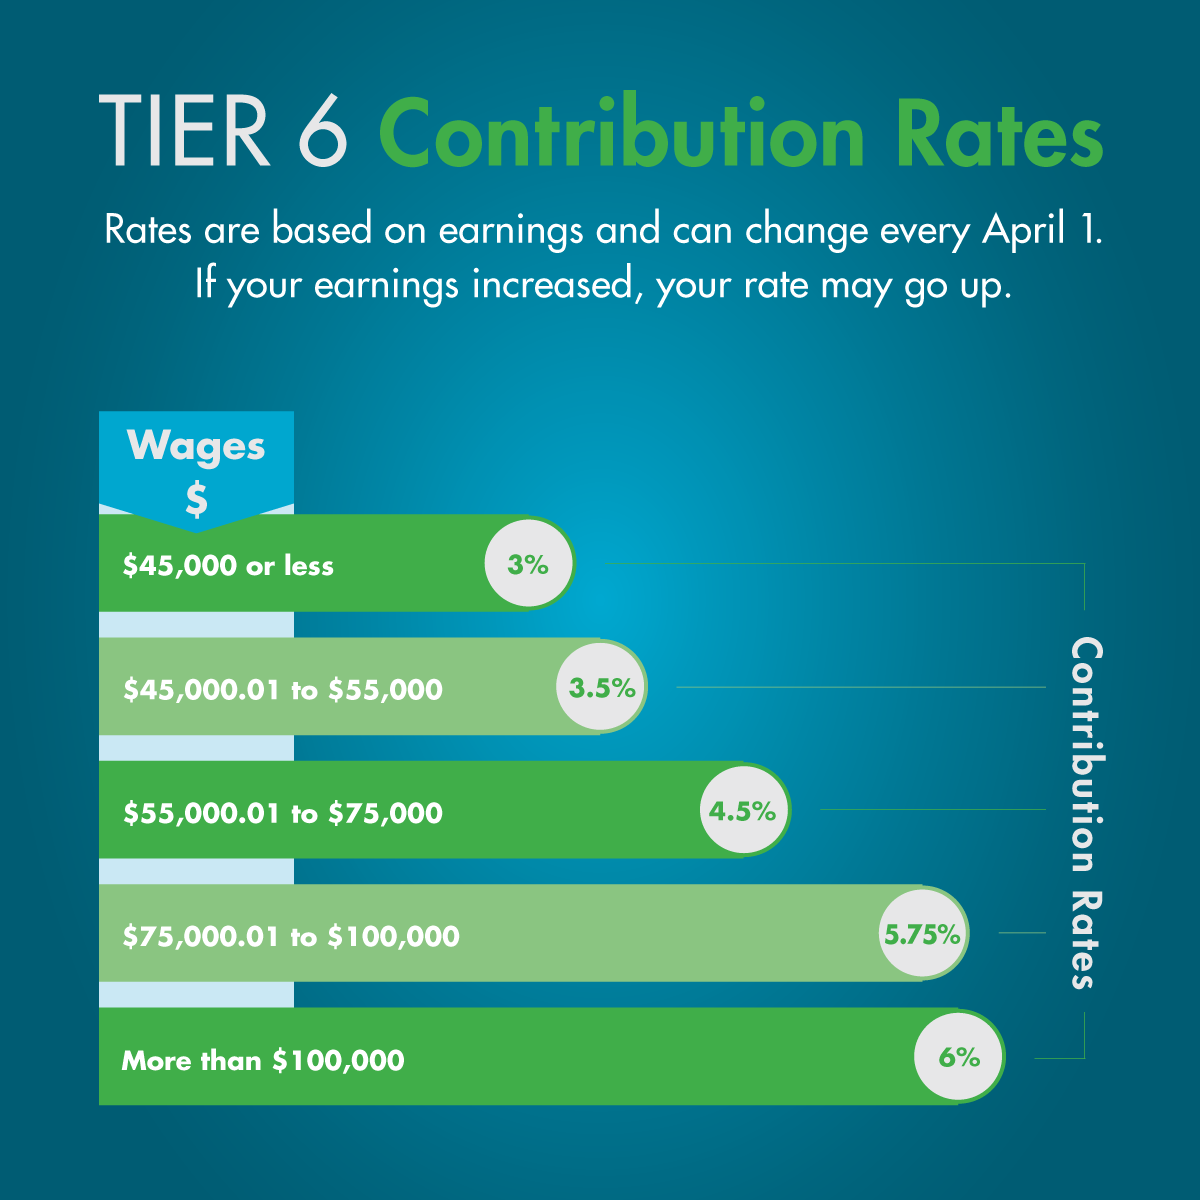 Tier 6 contribution rate